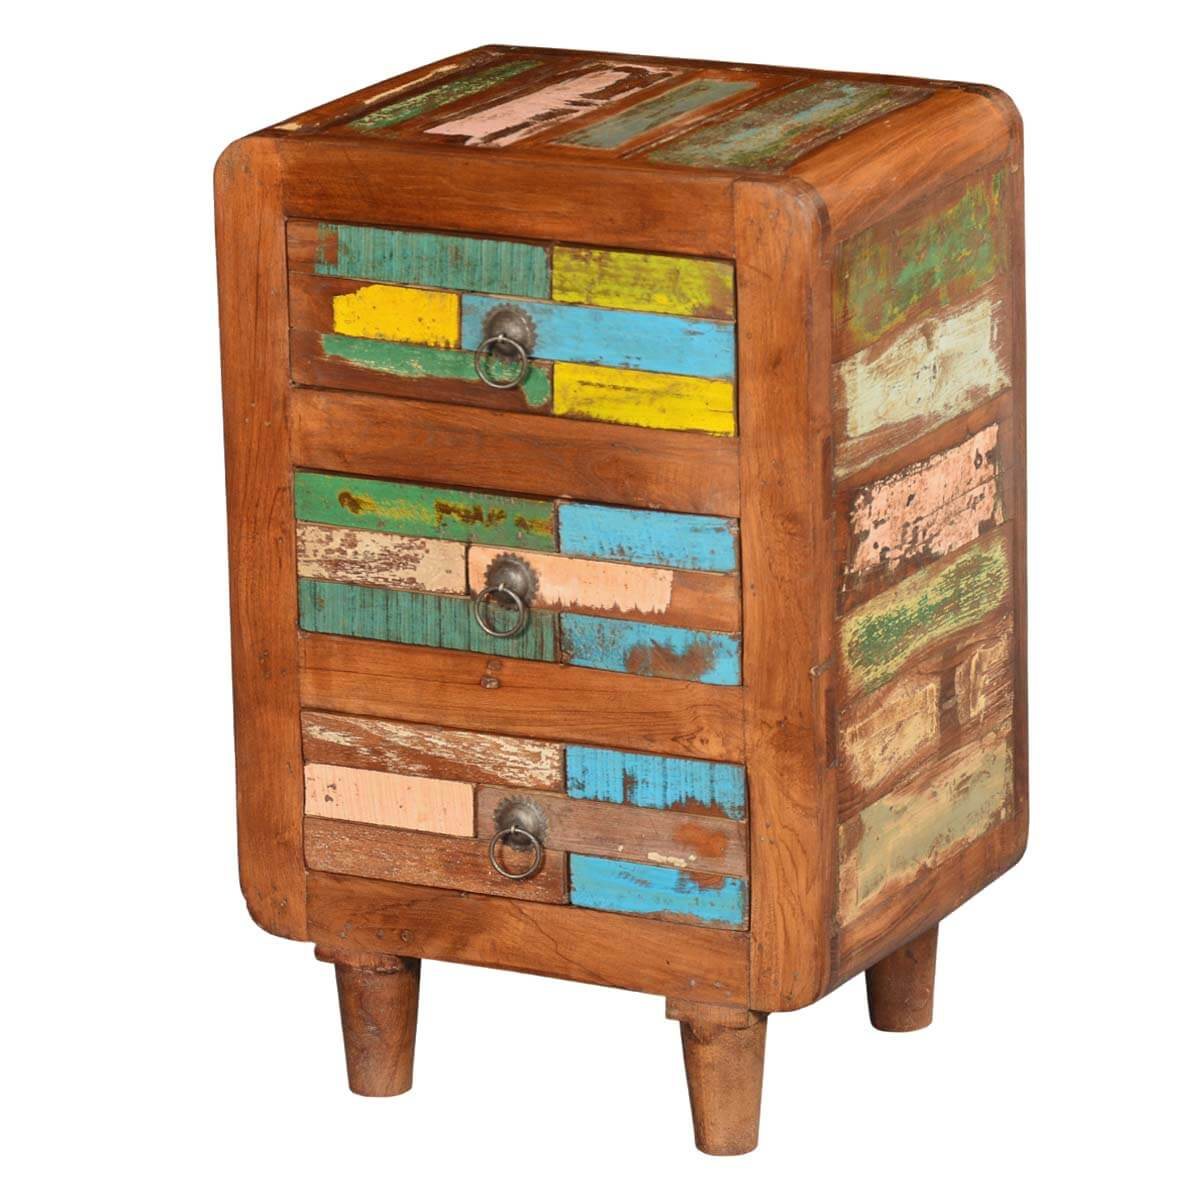 Rustic Reclaimed Wood Multi Colored Bedside End Table with 3 Drawers